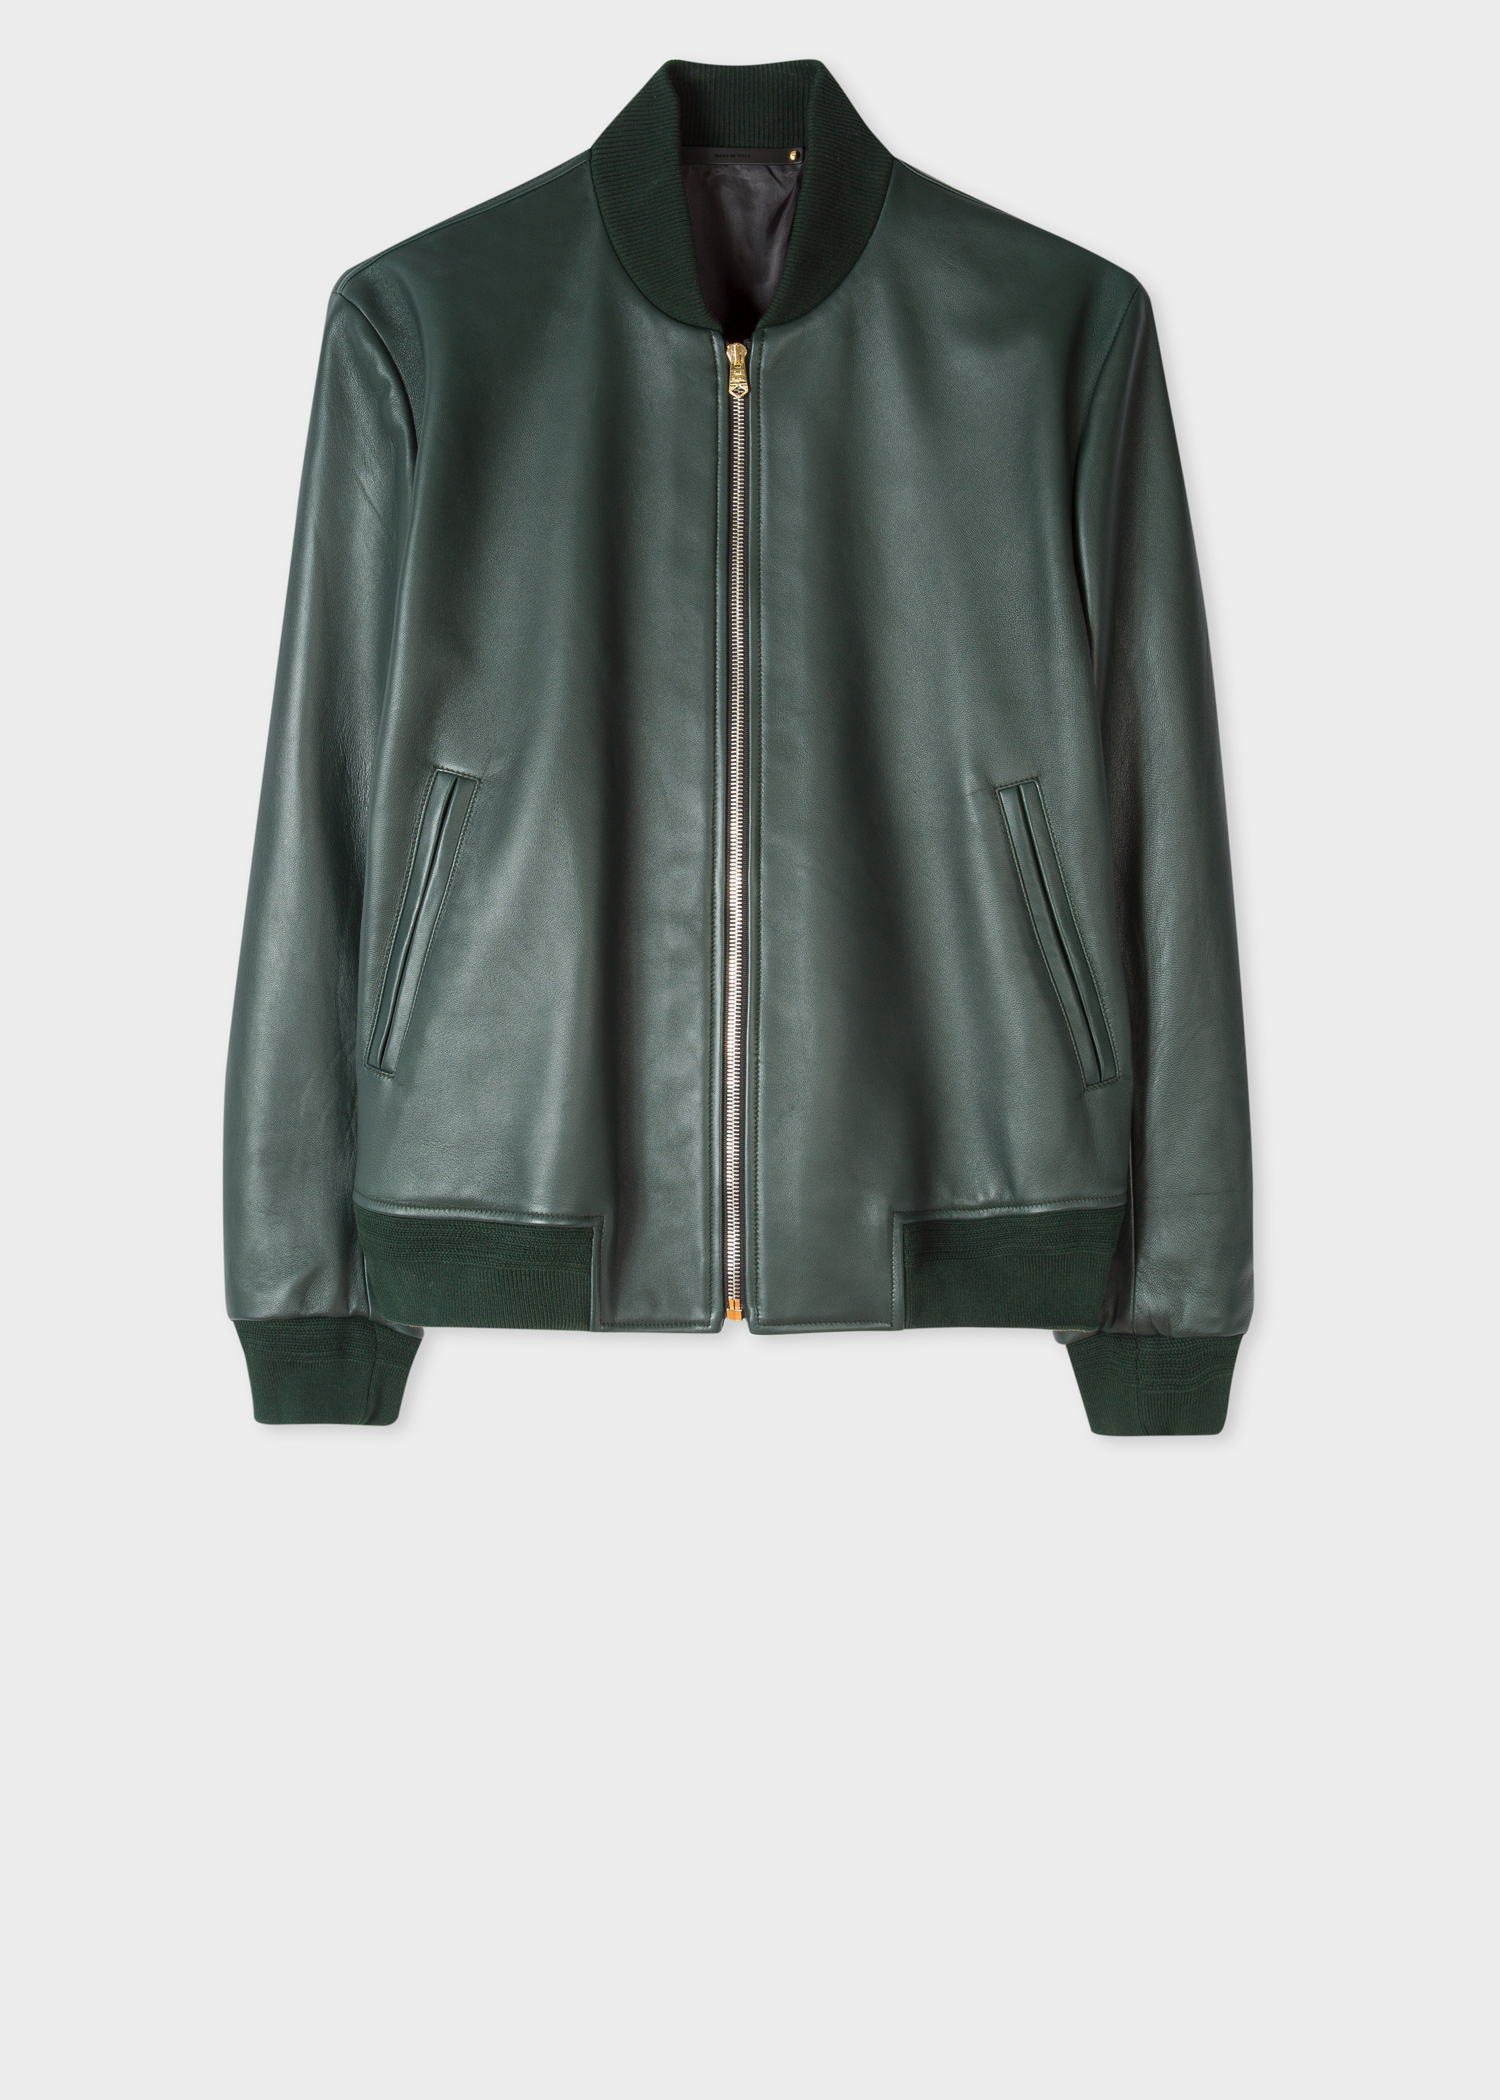 98dfebe44 Men's Dark Green Leather Bomber Jacket With 'Artist Stripe' Lining